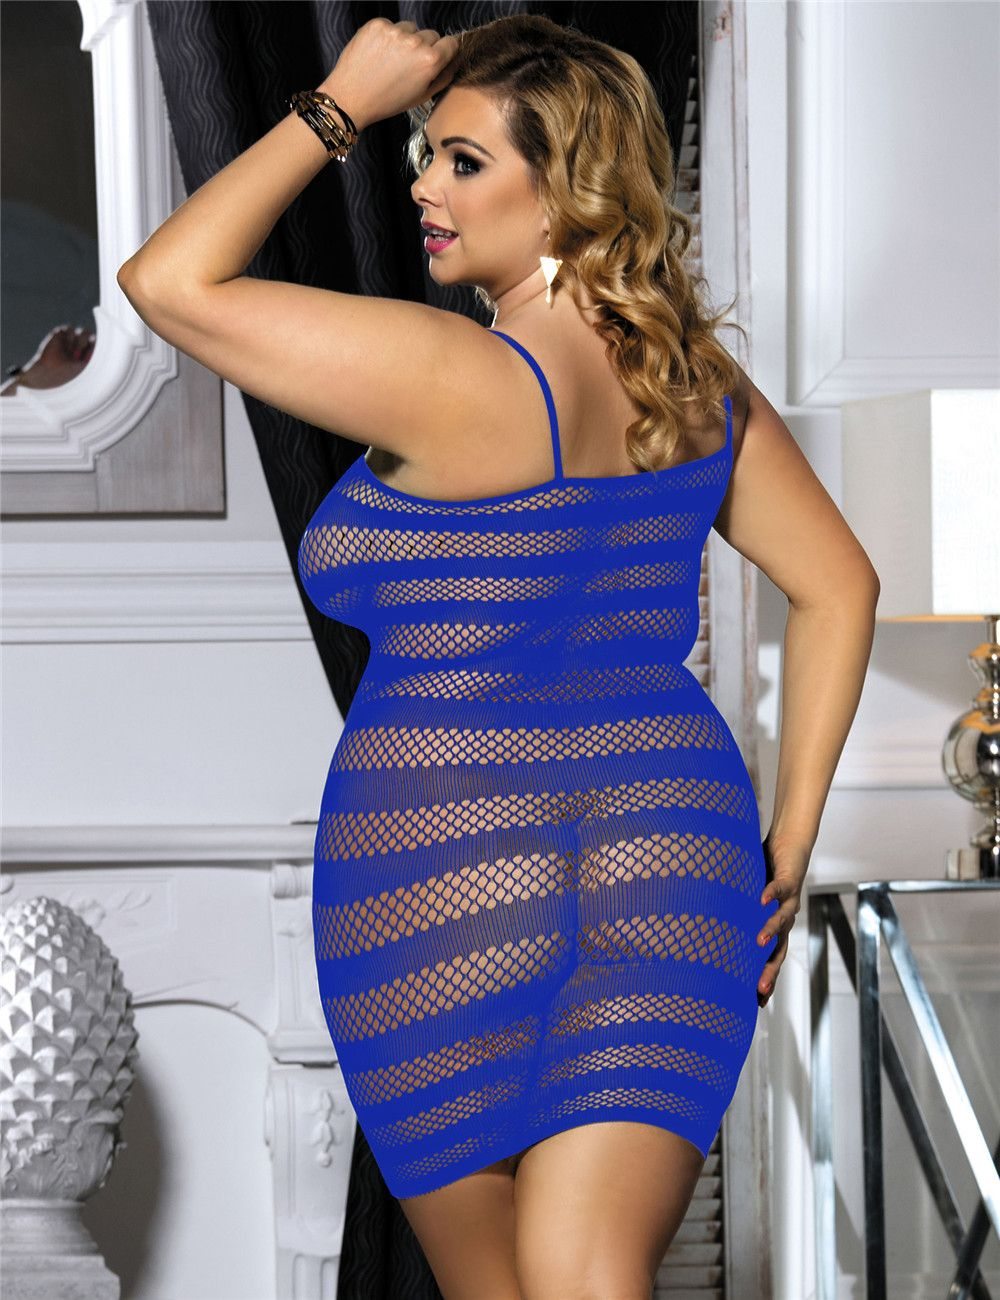 Plus Size Bodystockings Wholesale 98d8b99c3